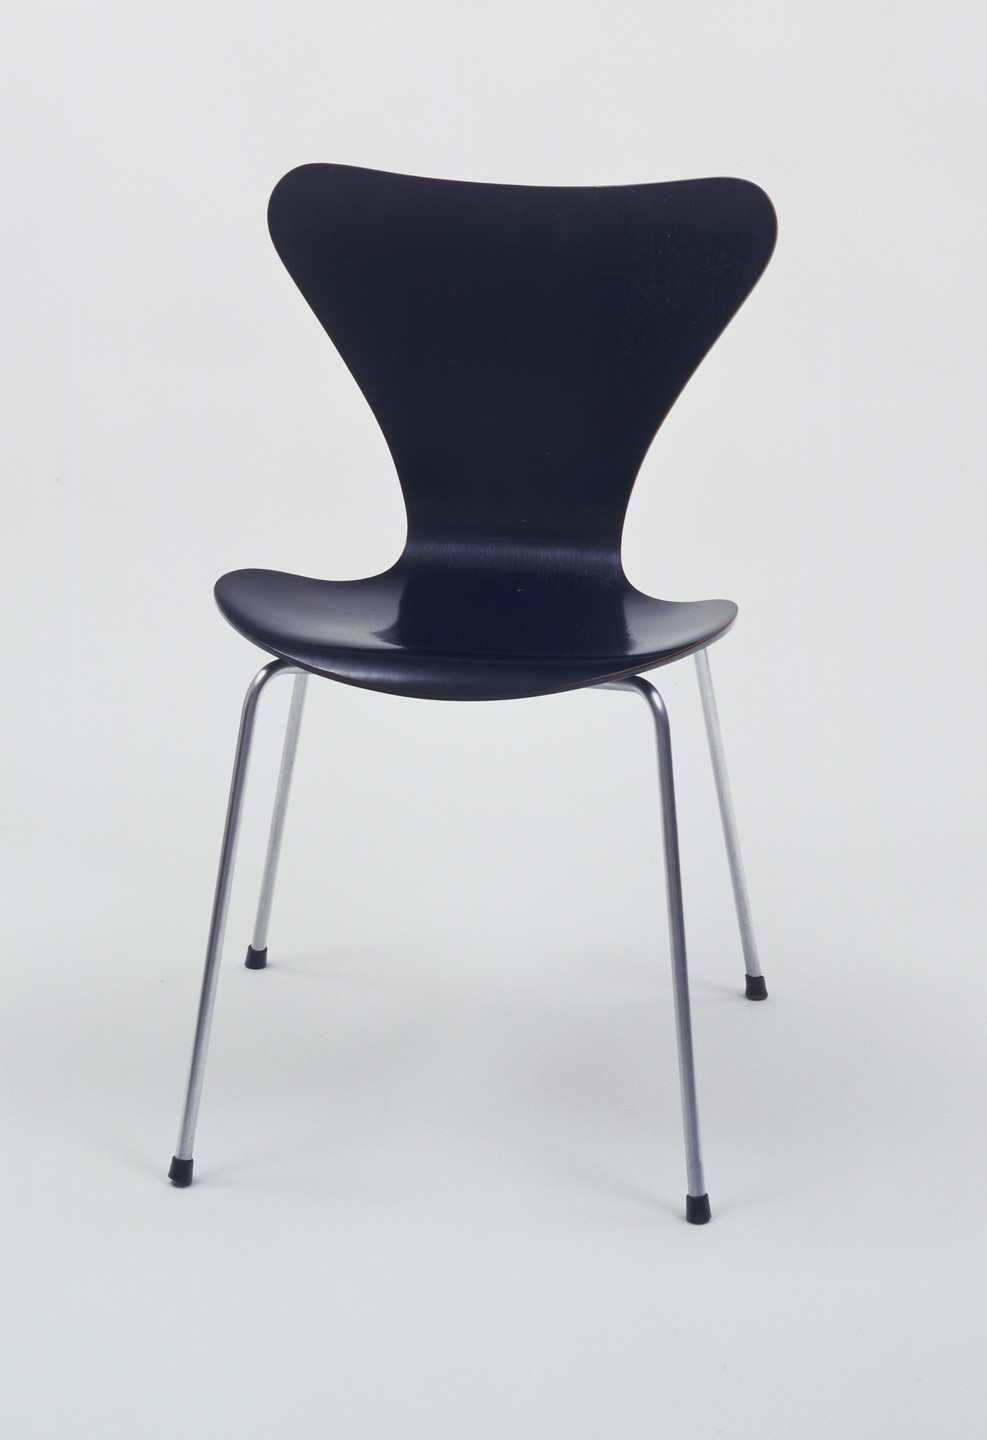 Arne Jacobsen. Chair Series 7 (3107). c. 1952